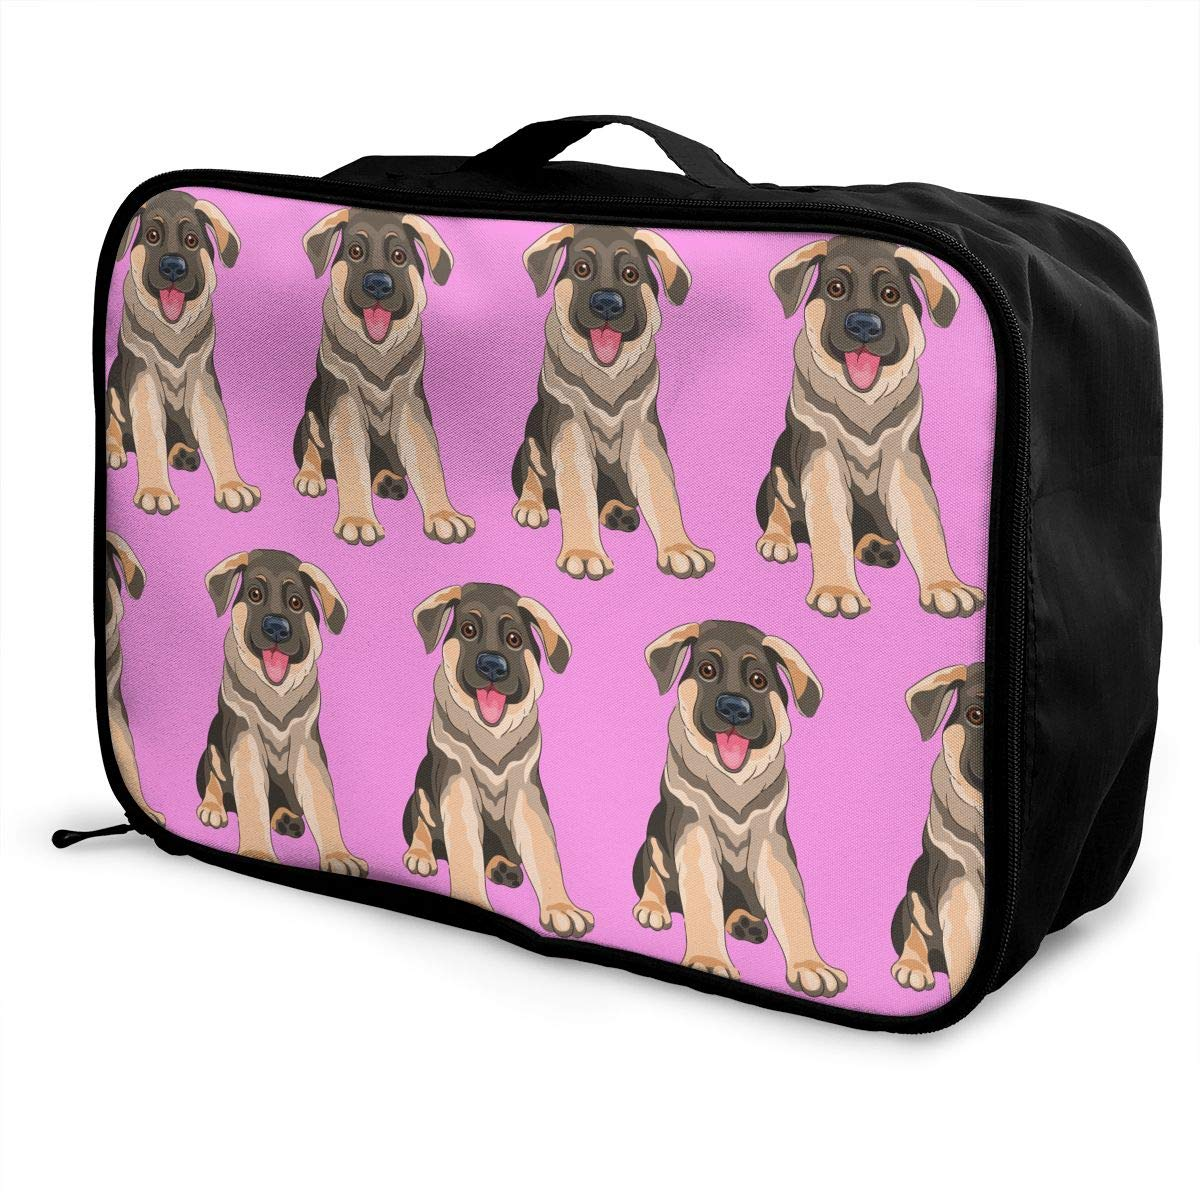 YueLJB German Shepherd Puppy Dog Lightweight Large Capacity Portable Luggage Bag Travel Duffel Bag Storage Carry Luggage Duffle Tote Bag